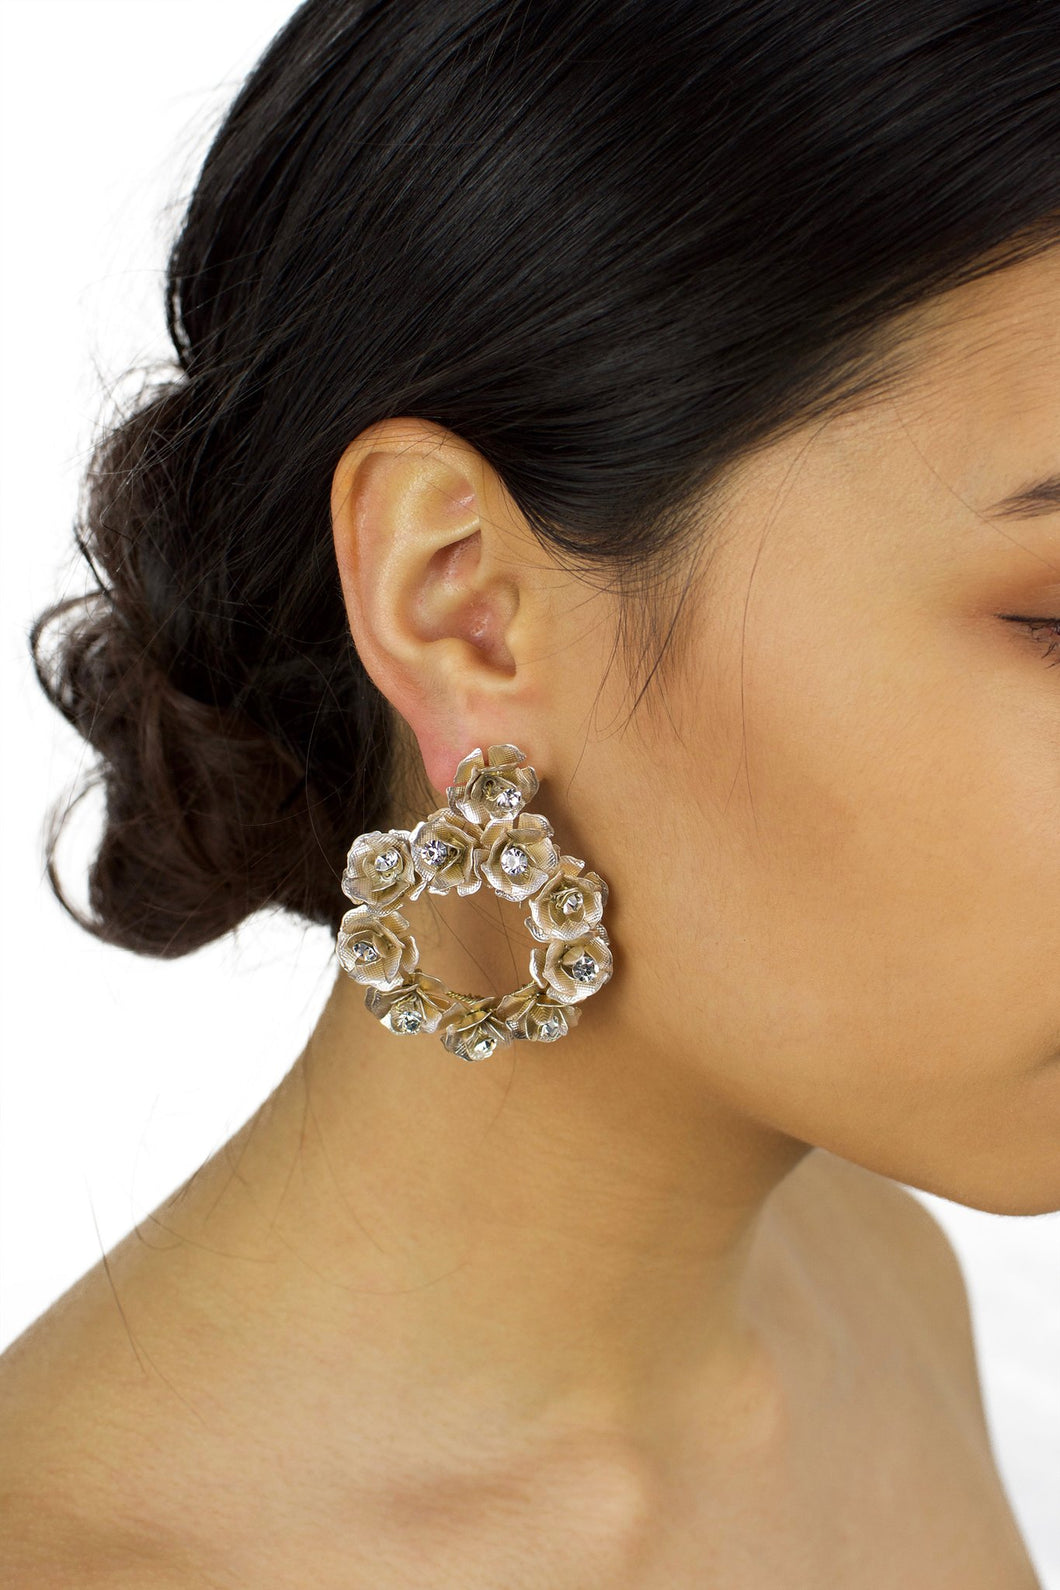 Ring of pale gold flowers earring worn by a bride with up style hair